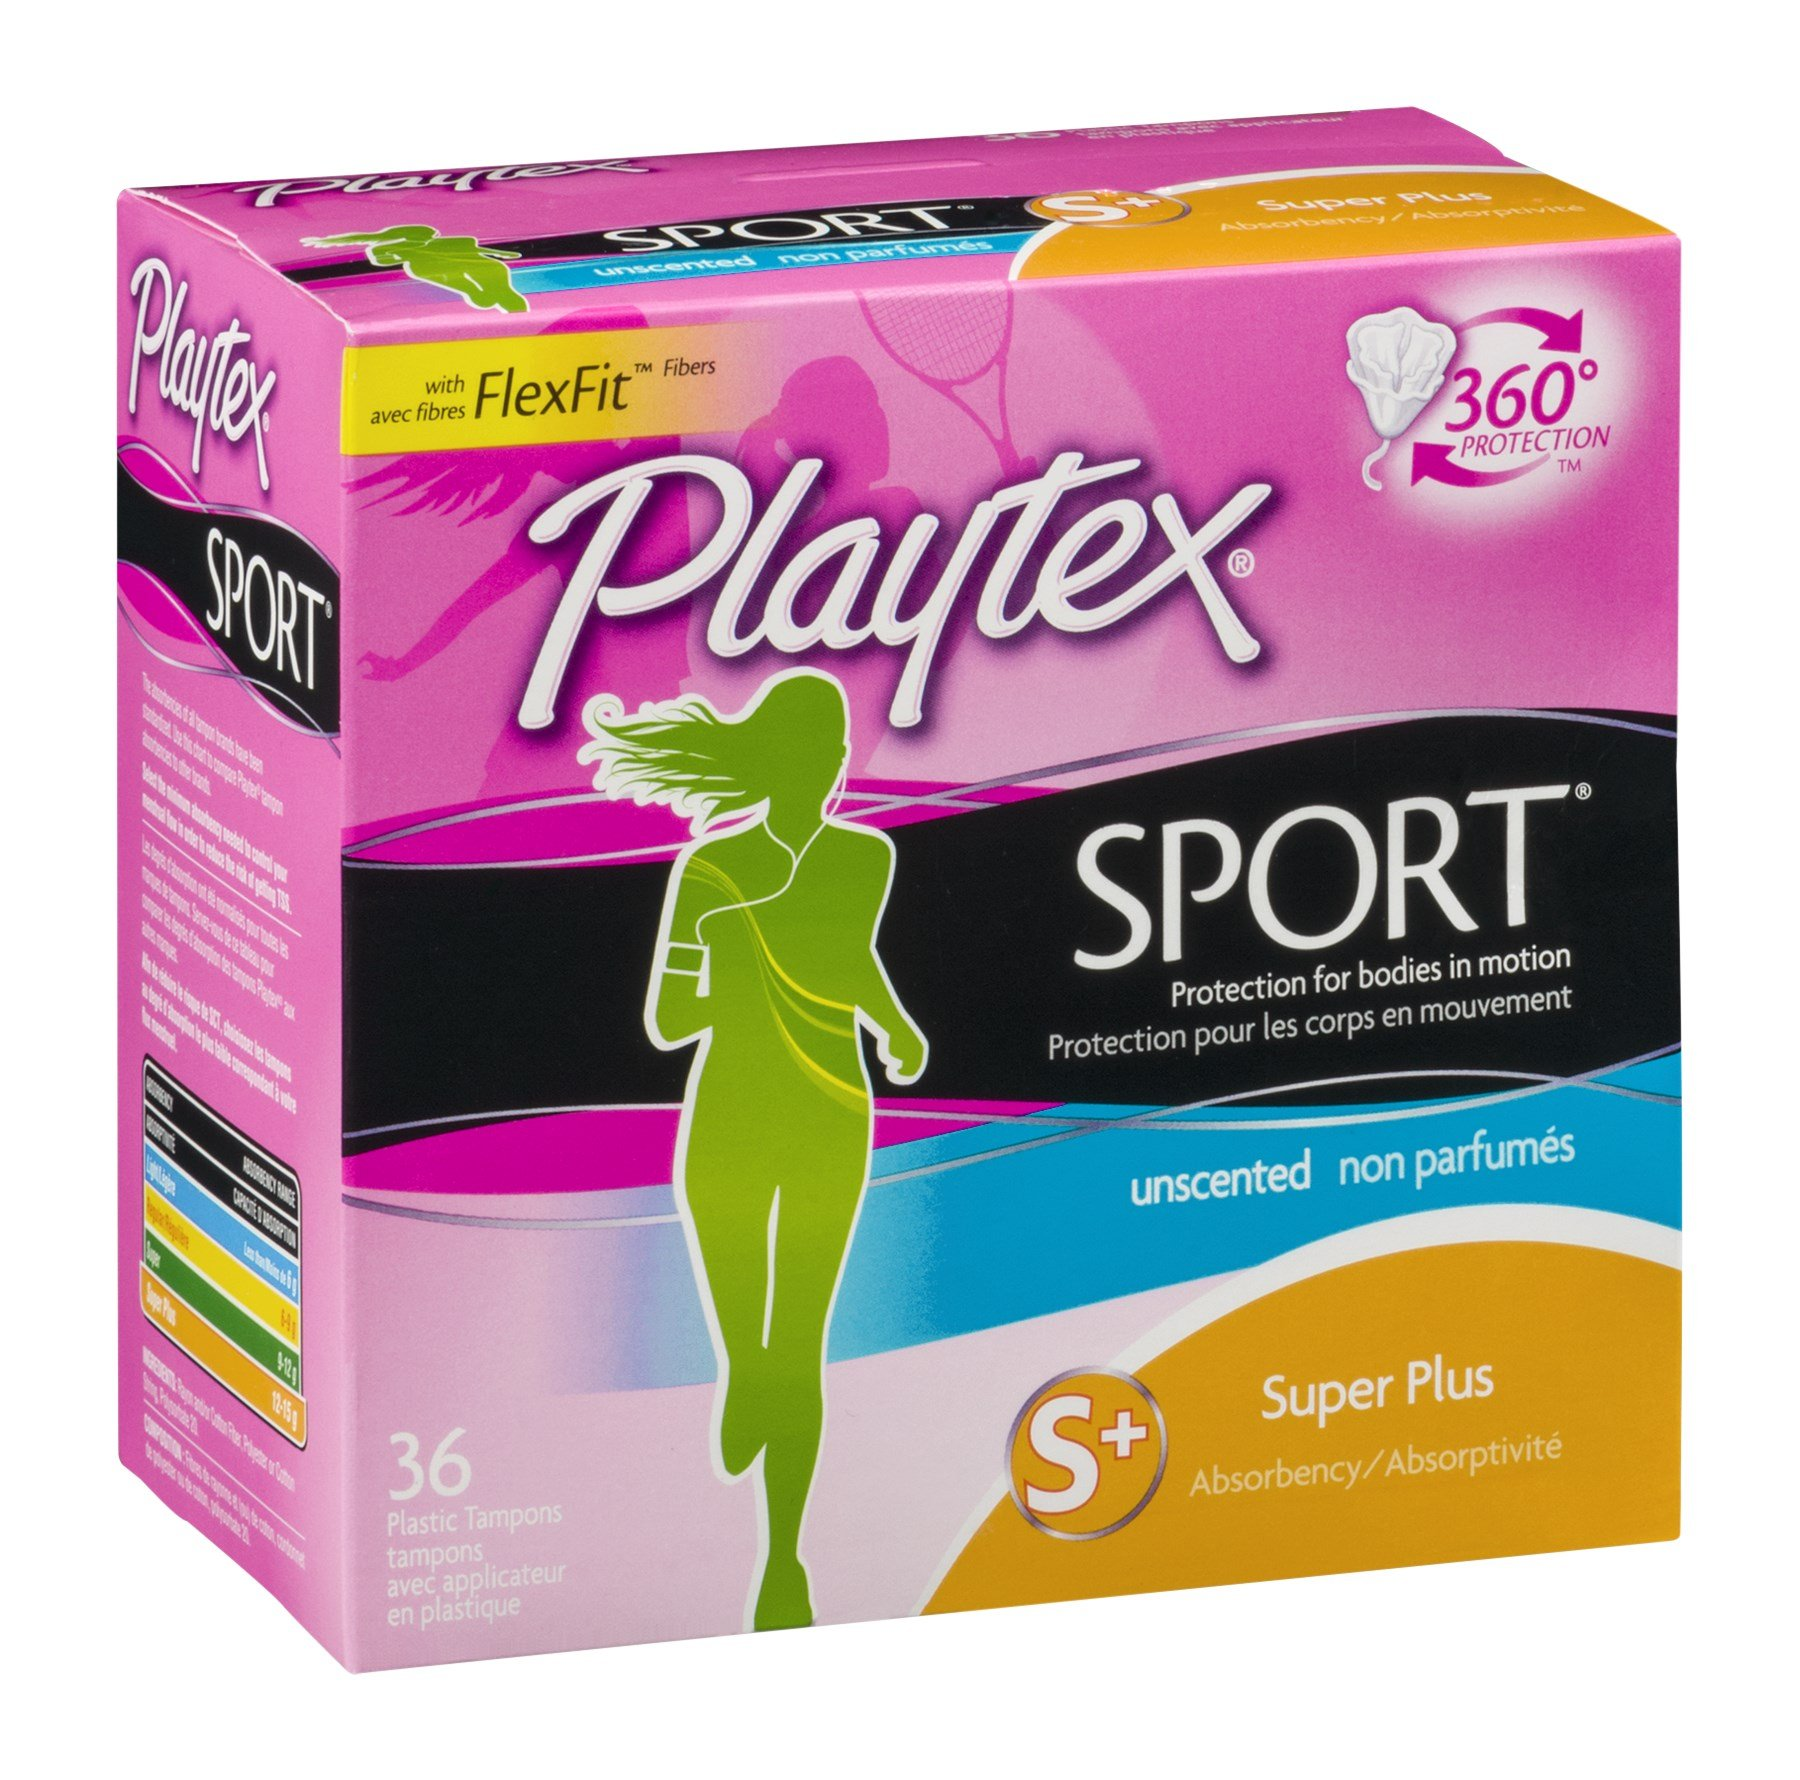 Playtex Sport Unscented Super Tampon 36 Ct, Pack of 9